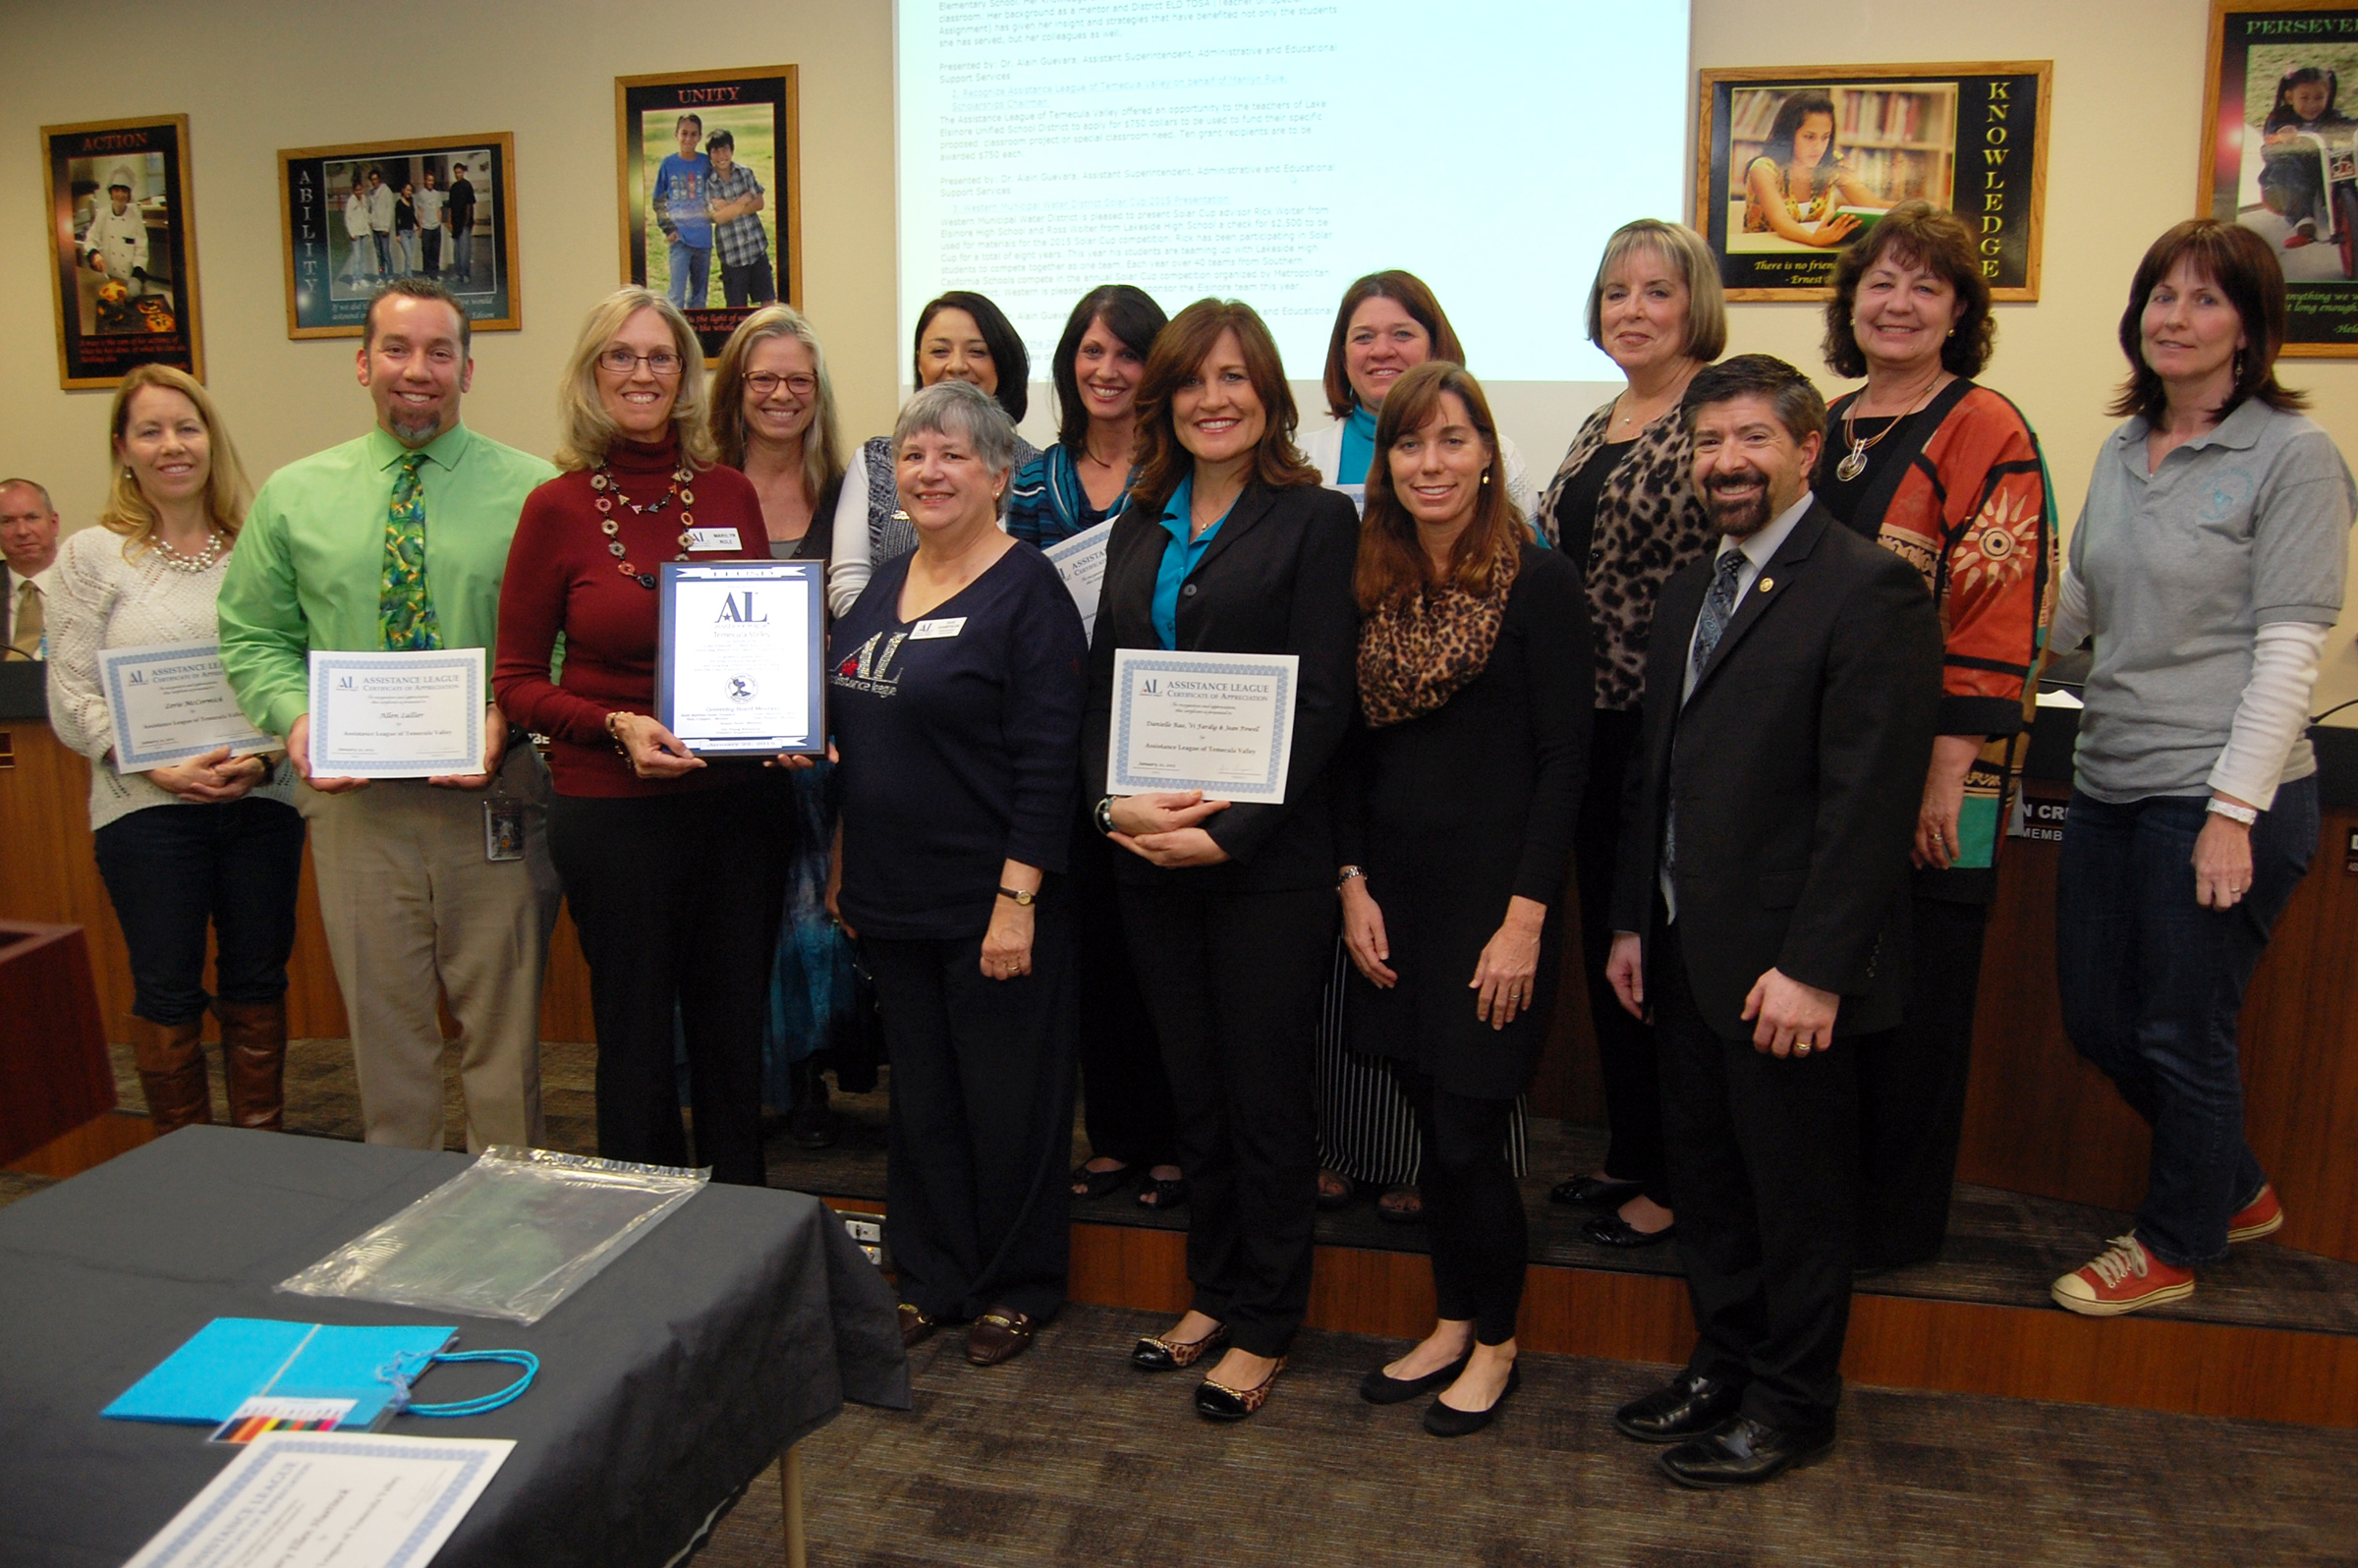 Lake Elsinore Unified School District teacher grants awarded for their classroom projects.